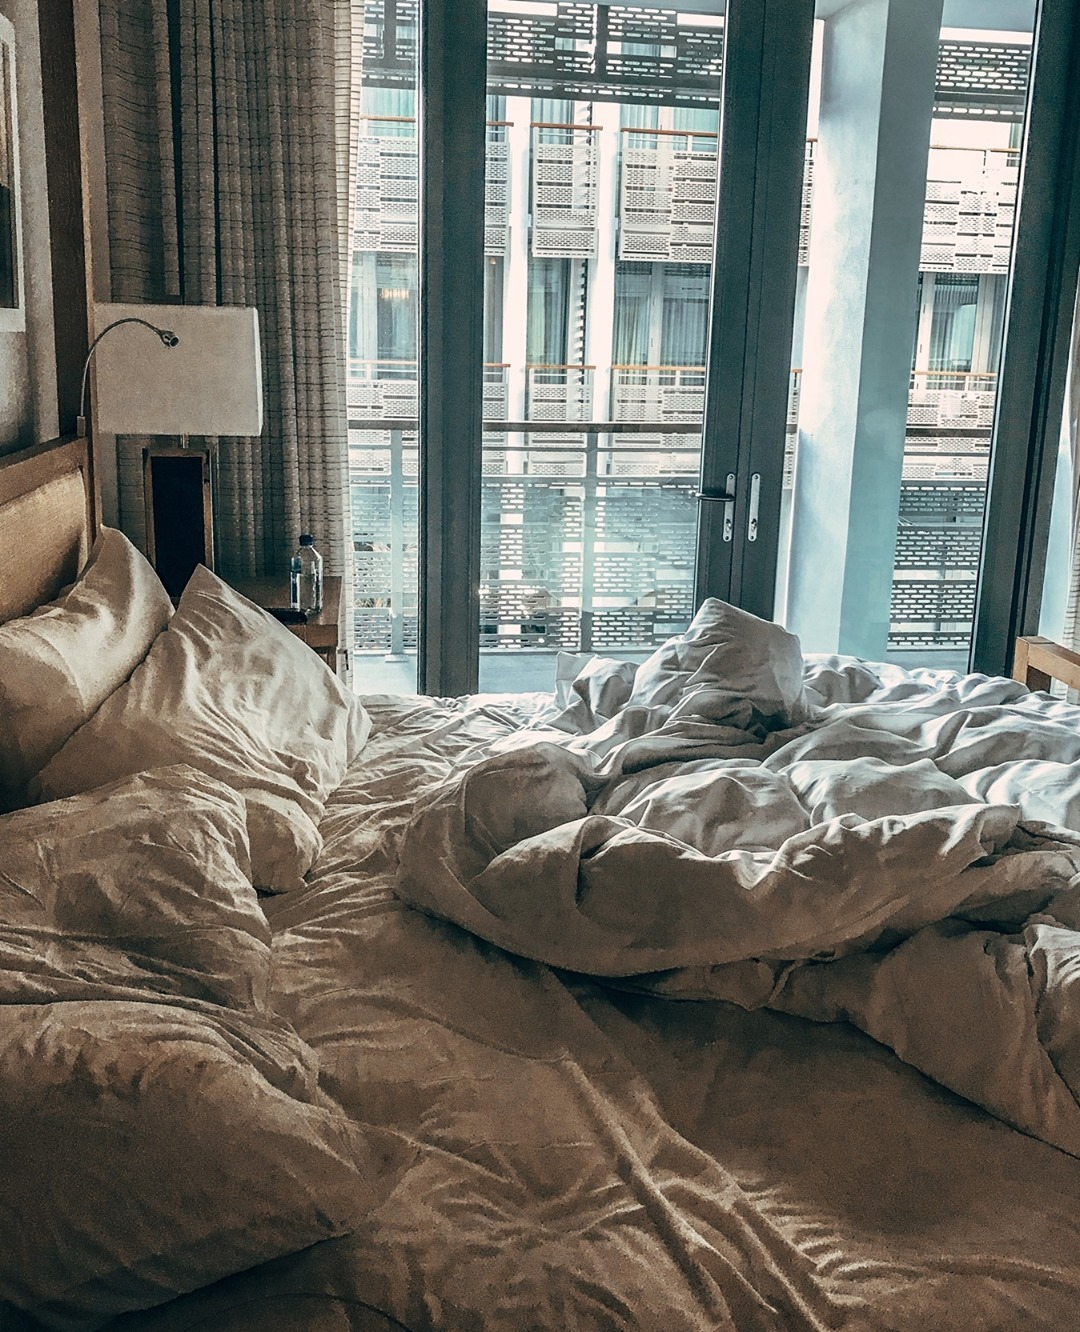 A undone bed in the morning